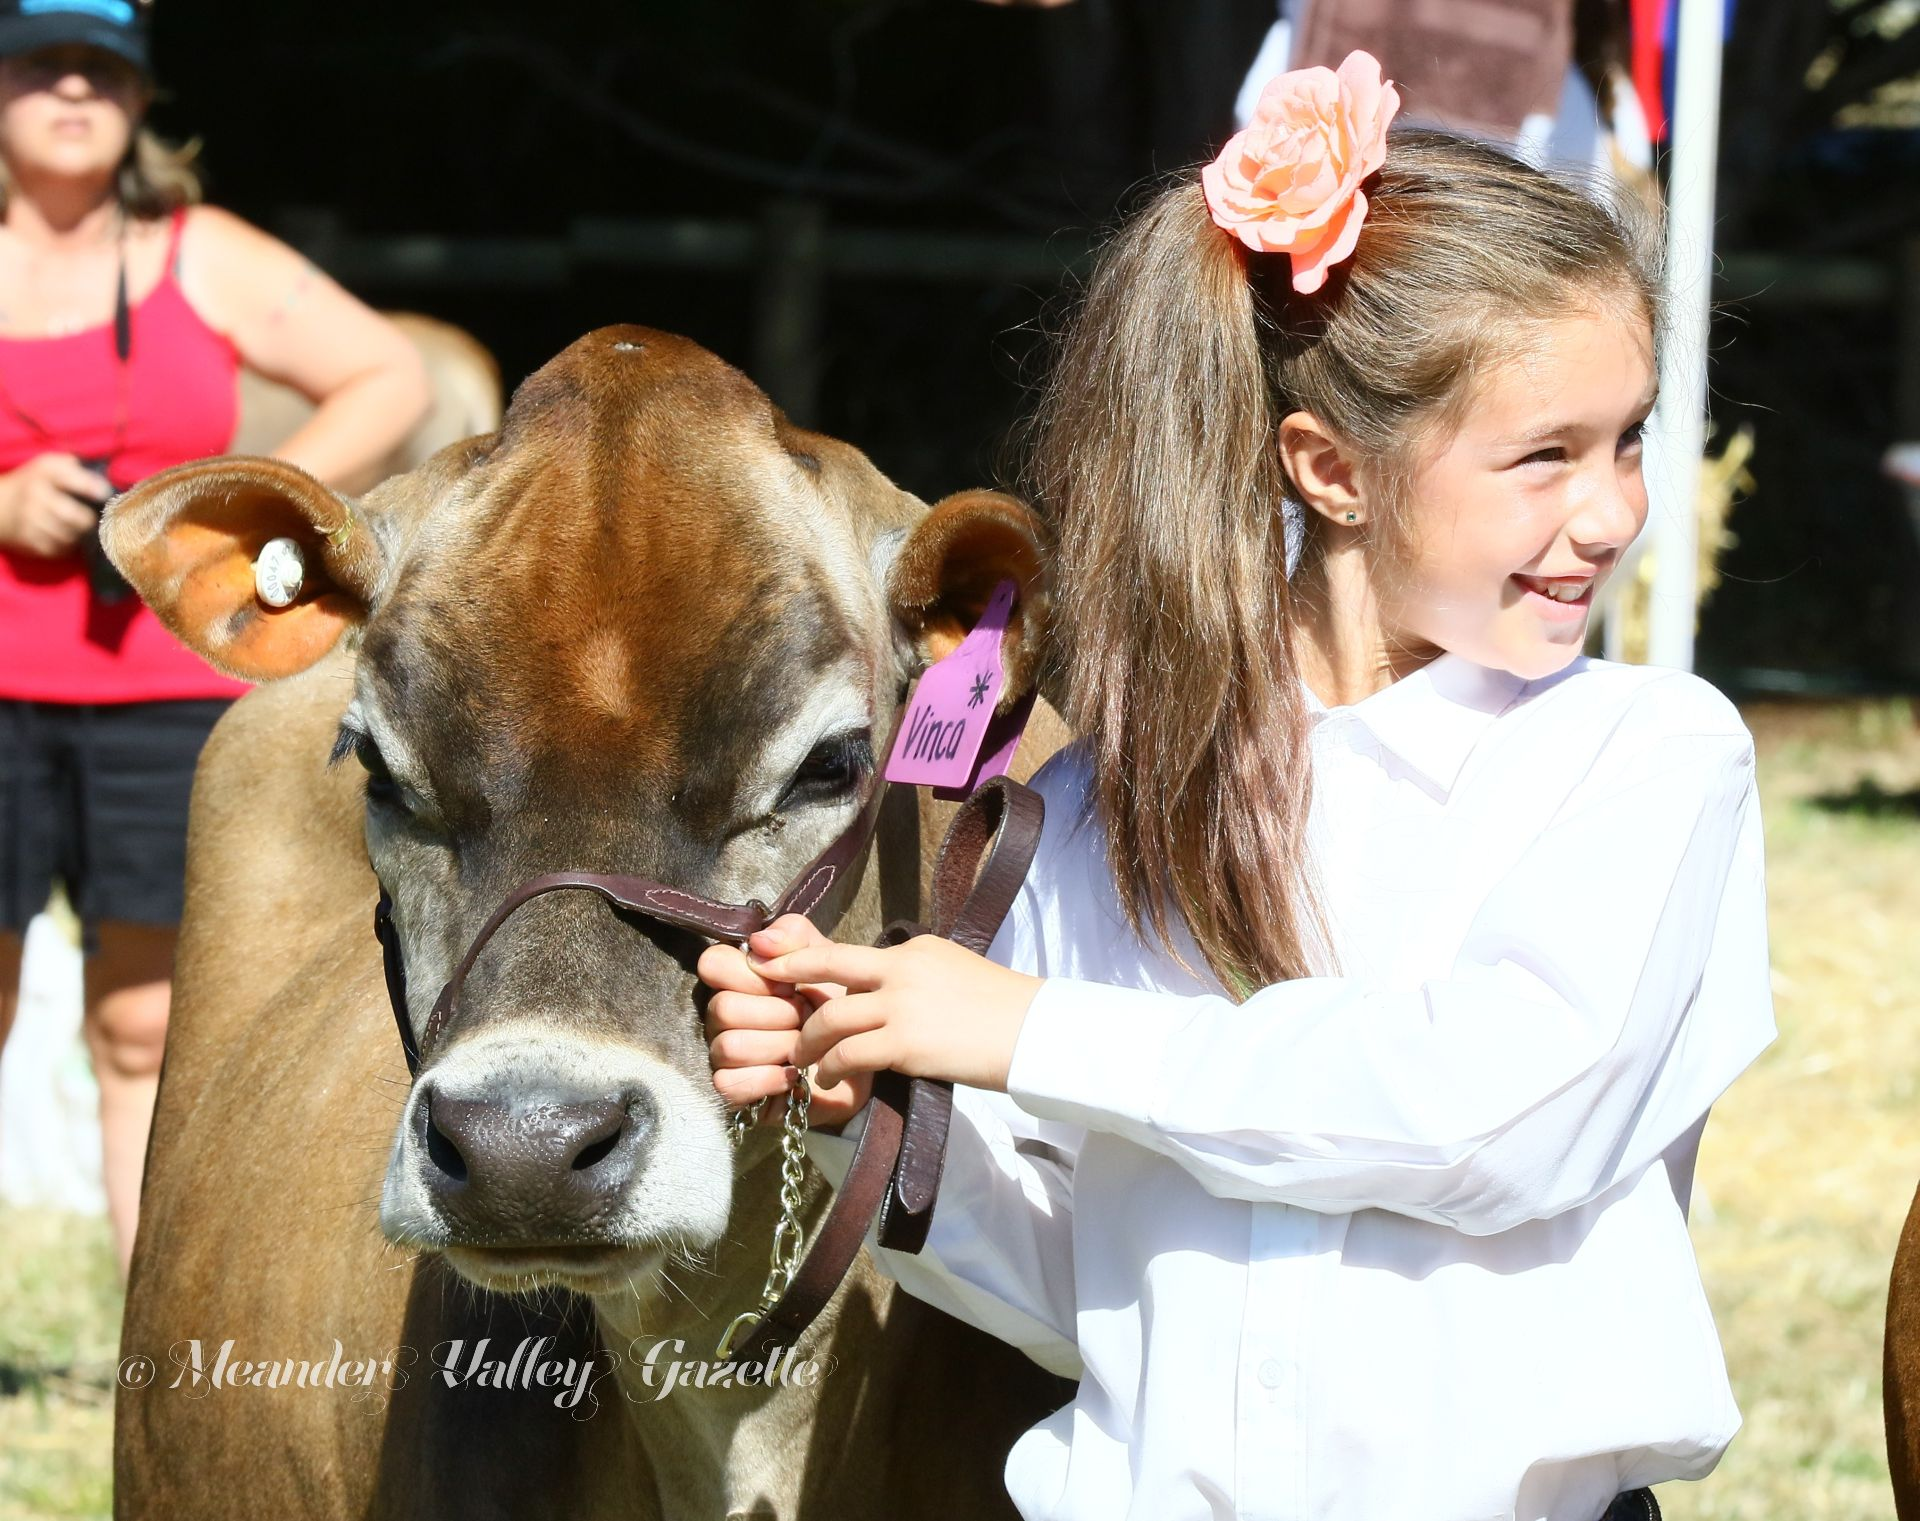 Junior cattle handling is a popular event at the Chudleigh Show